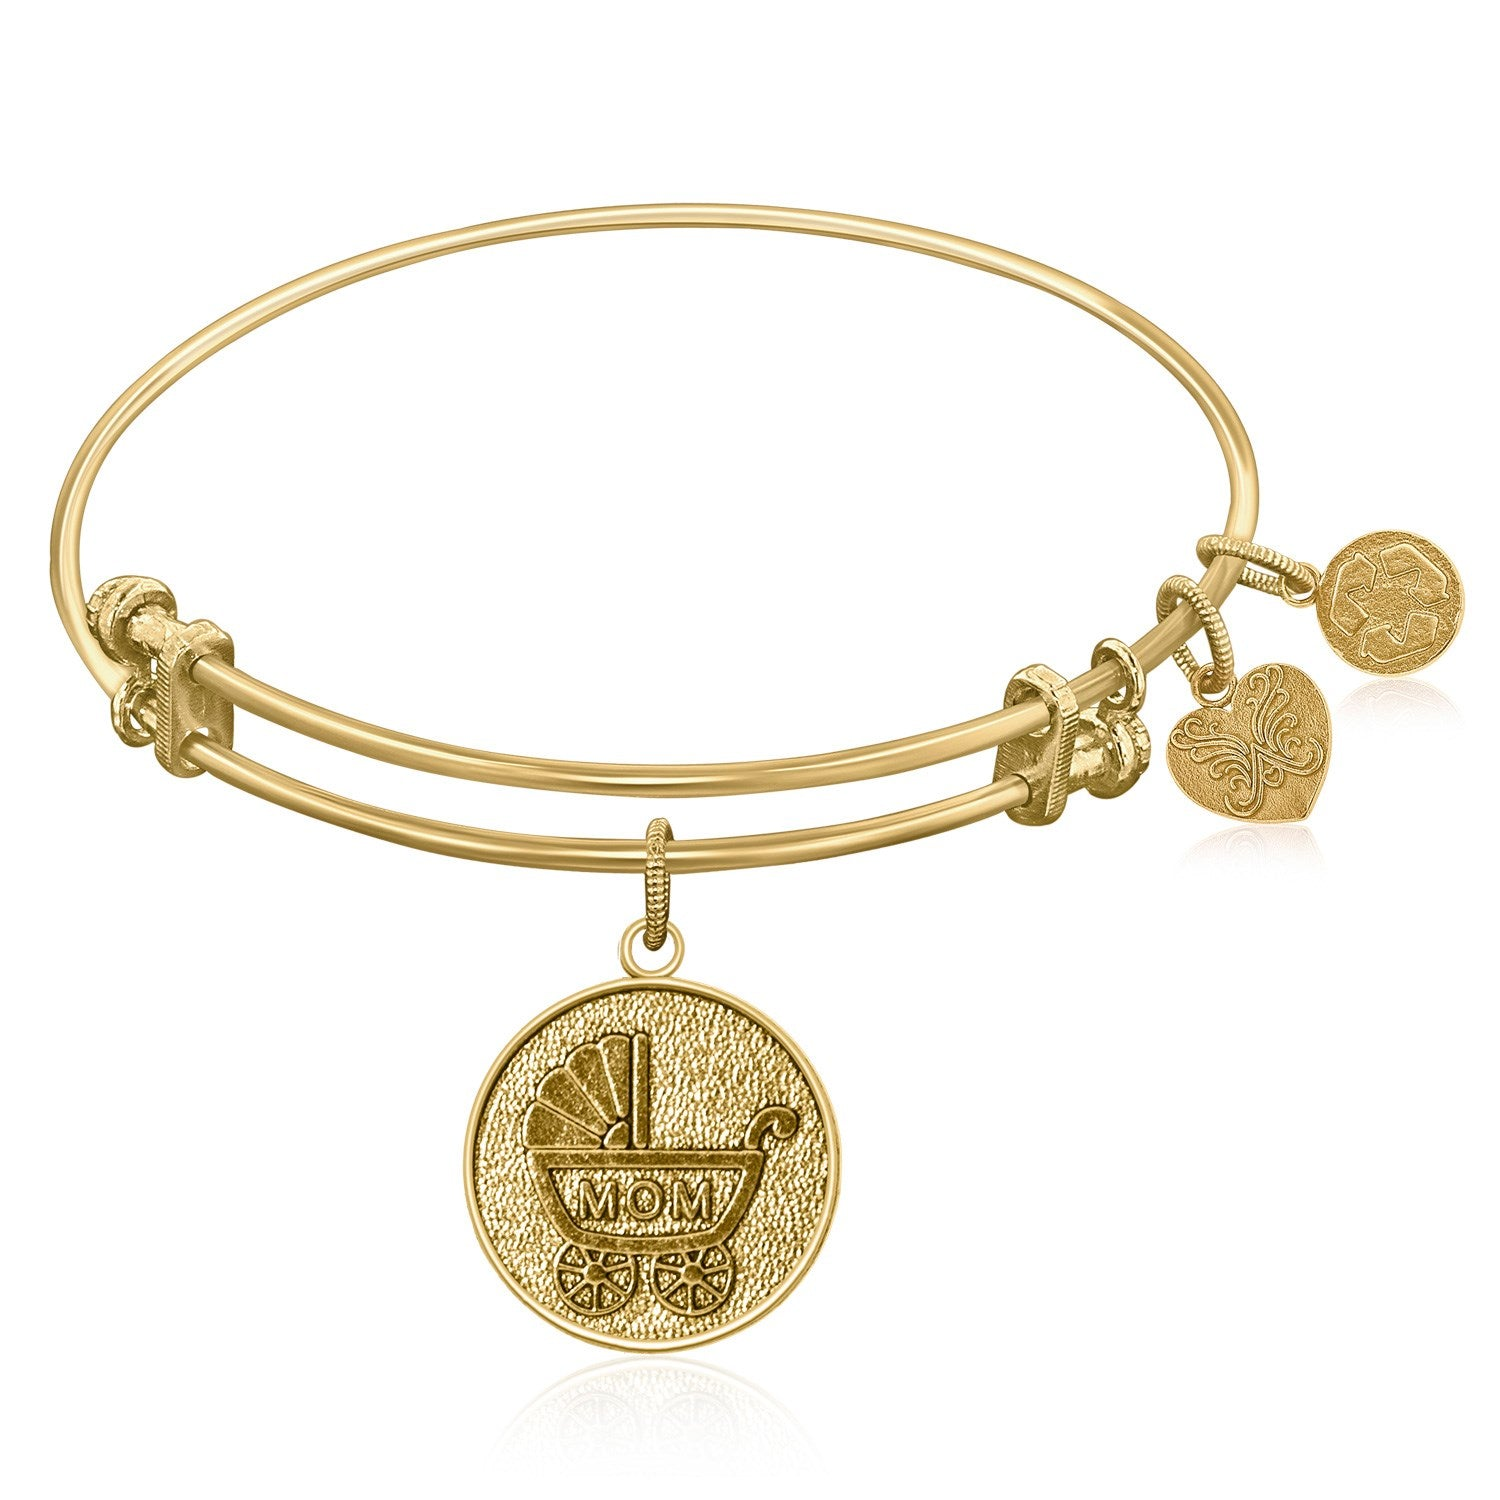 Expandable Bangle in Yellow Tone Brass with New Mom Symbol